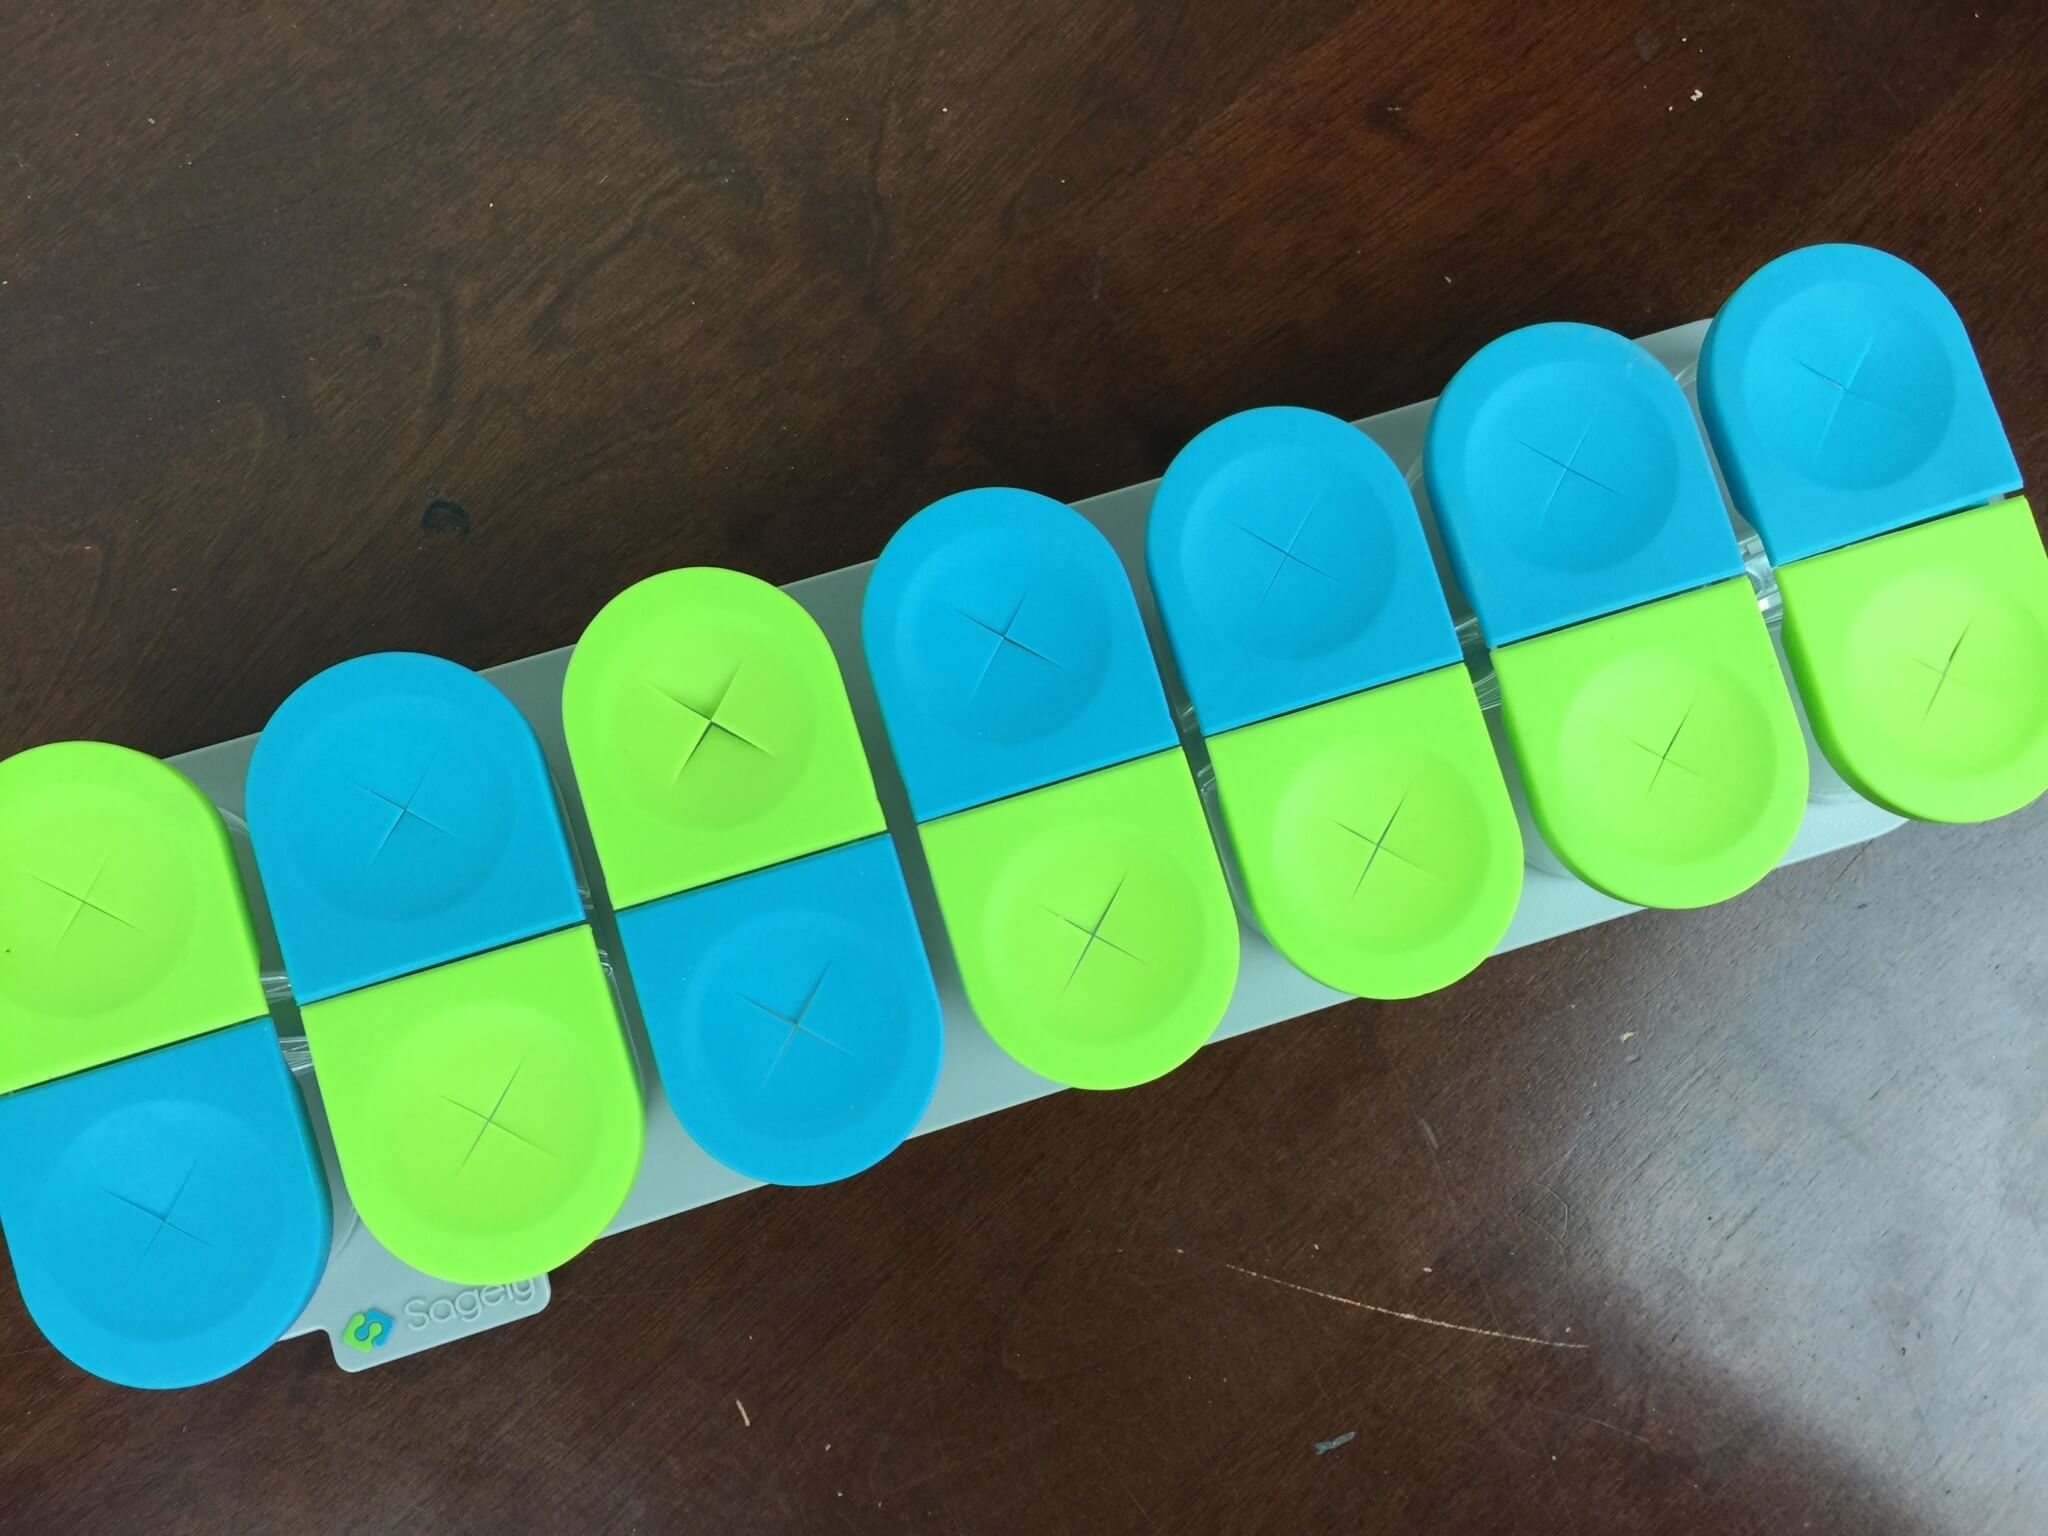 Sagely Pill Organizer Review: The Grail of Vitamin & Prescription Organizers!